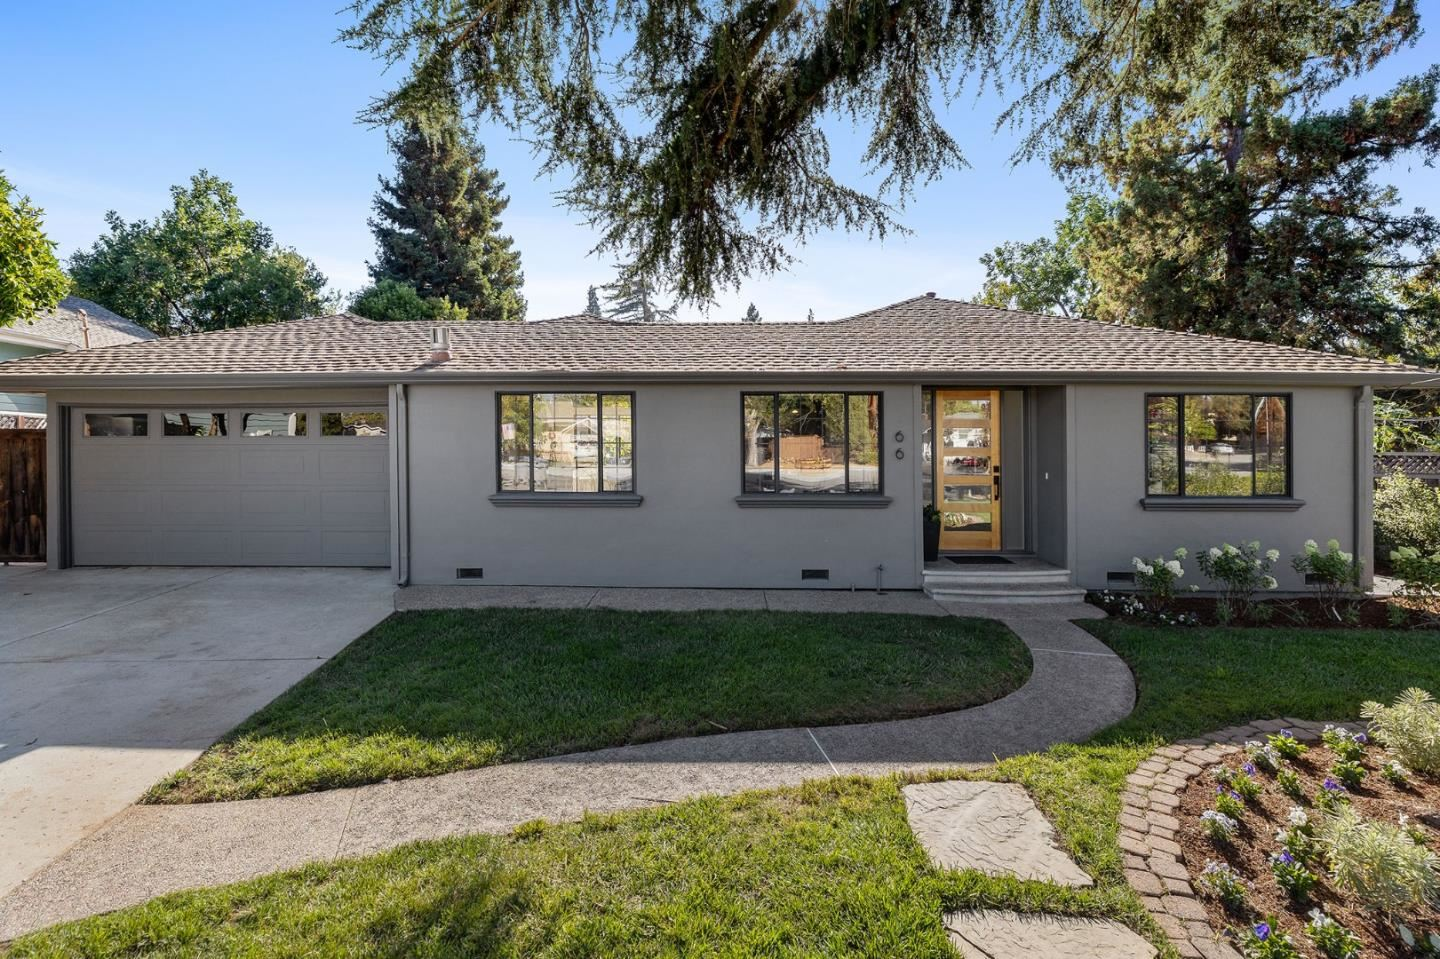 Photo for 66 Starr Way, MOUNTAIN VIEW, CA 94040 (MLS # ML81861127)